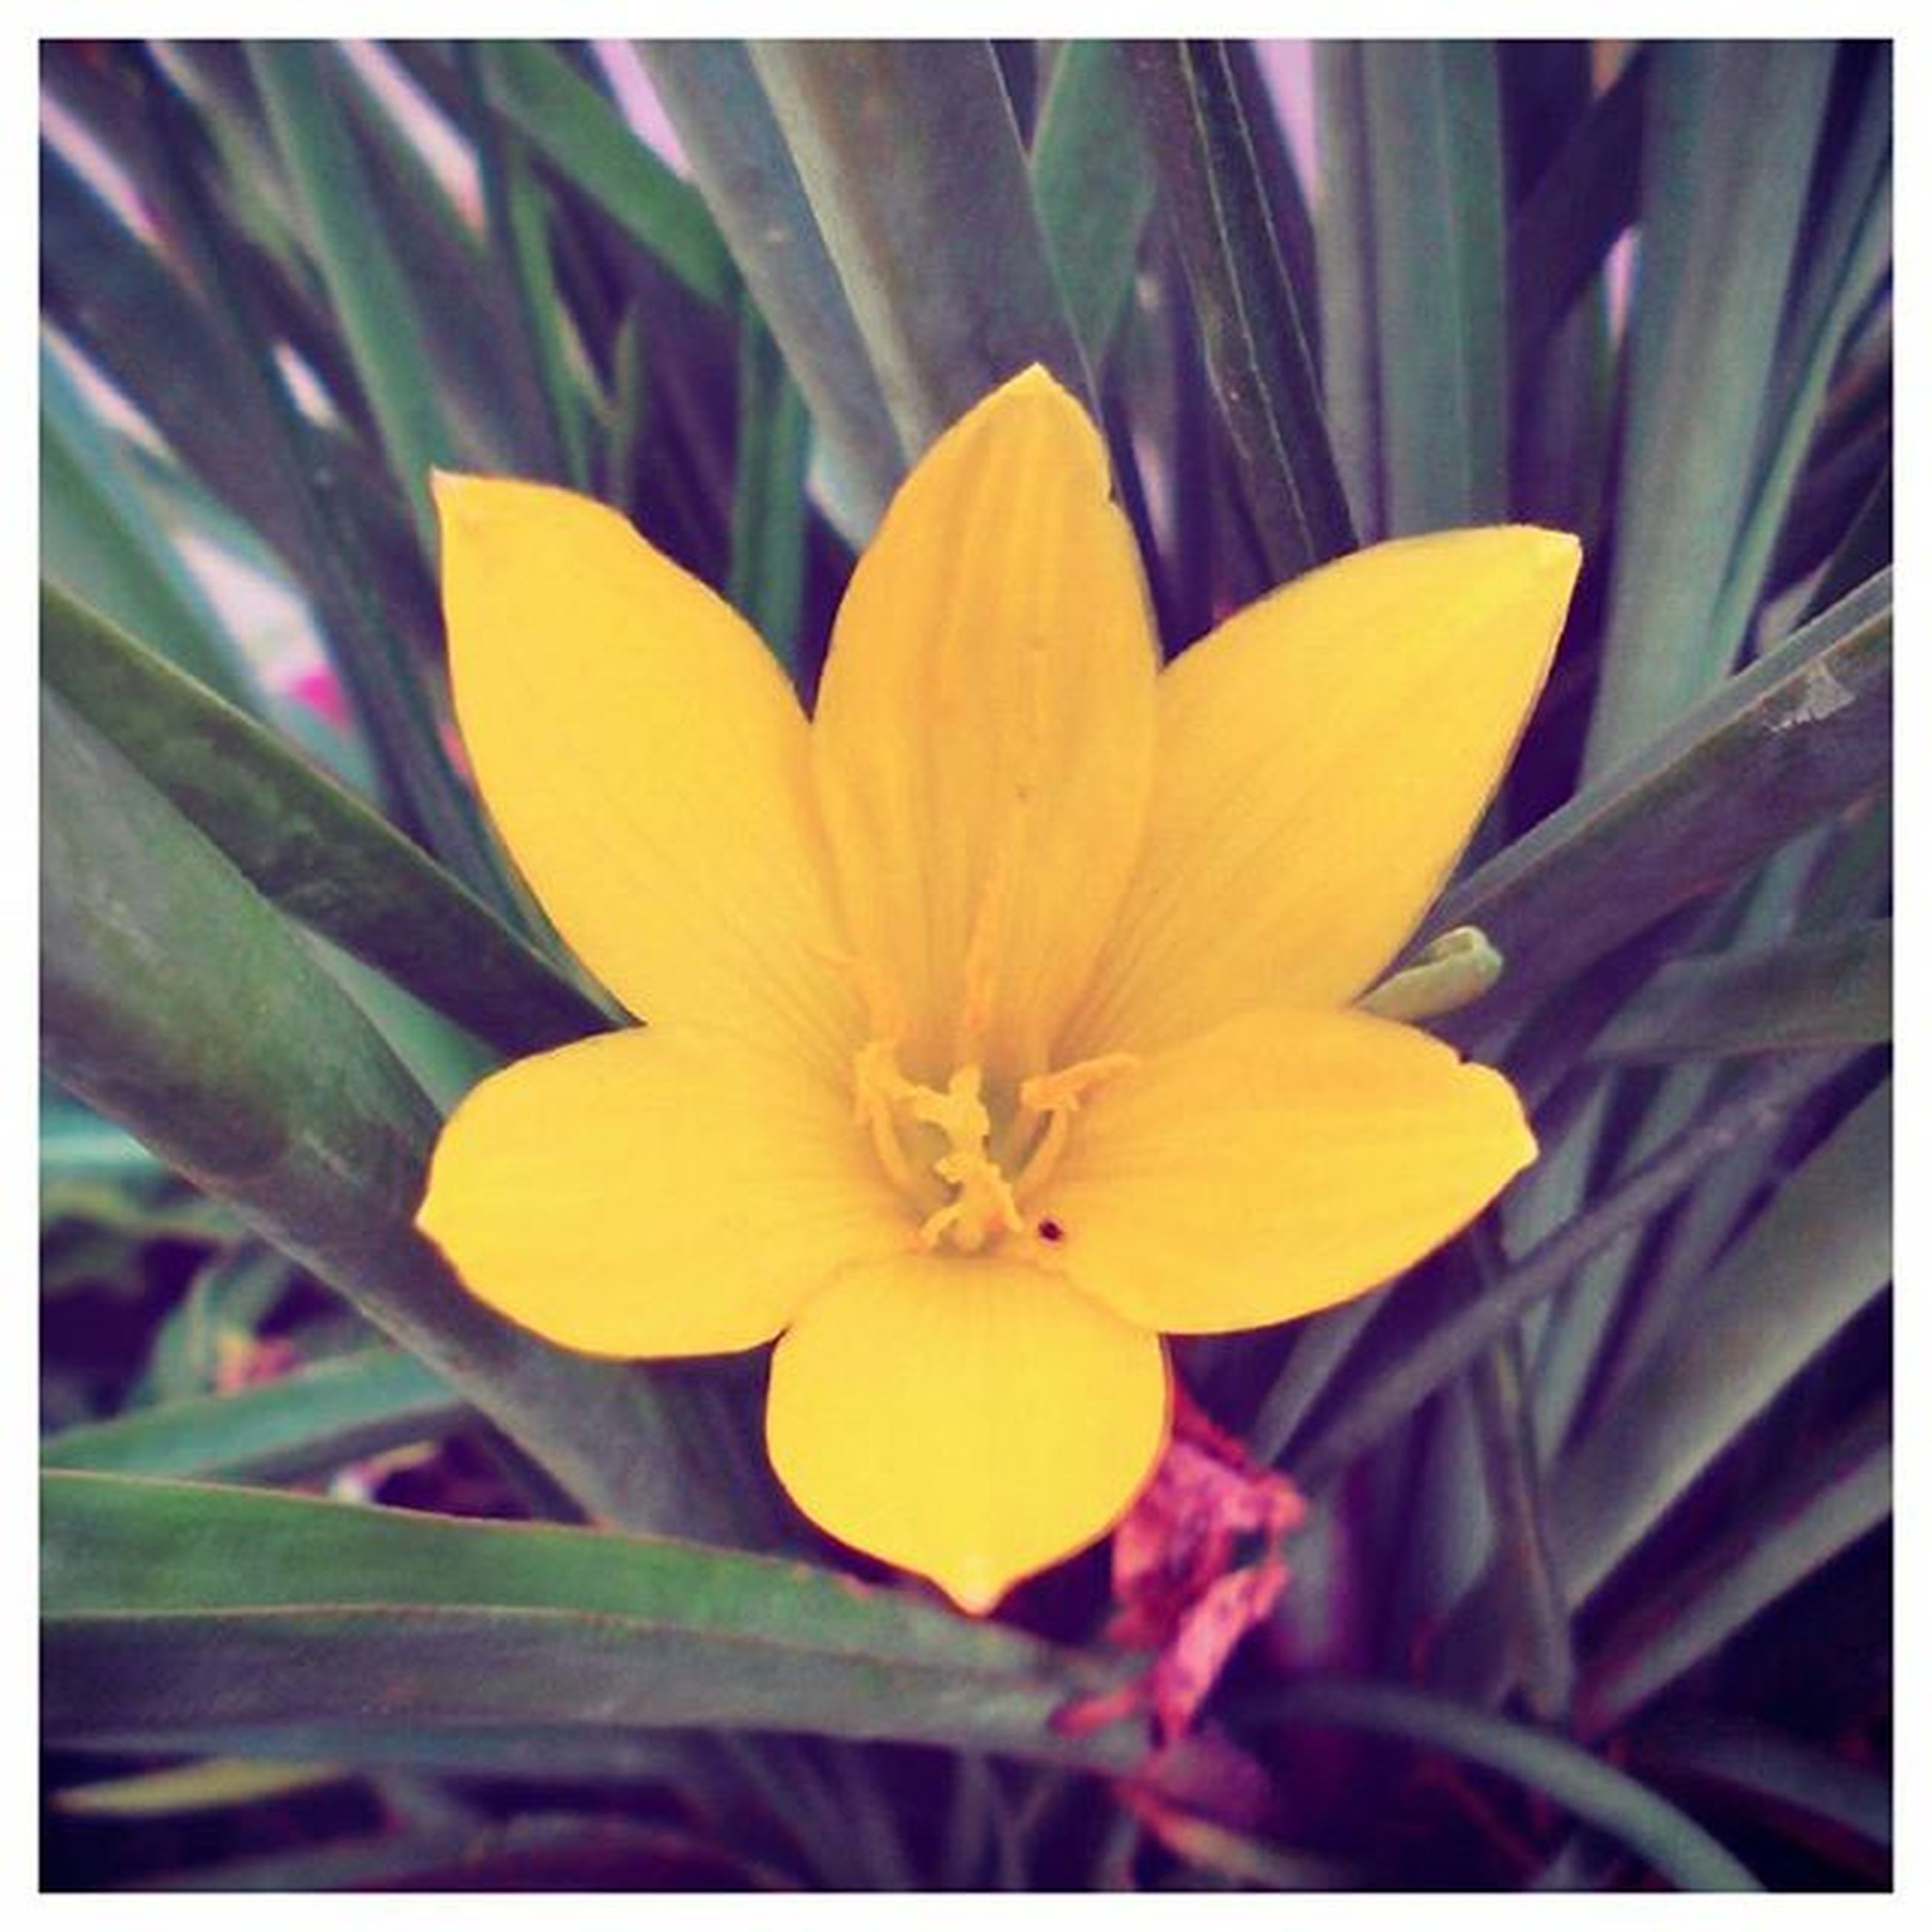 flower, petal, flower head, freshness, fragility, yellow, transfer print, growth, beauty in nature, close-up, blooming, single flower, nature, auto post production filter, pollen, focus on foreground, plant, stamen, in bloom, blossom